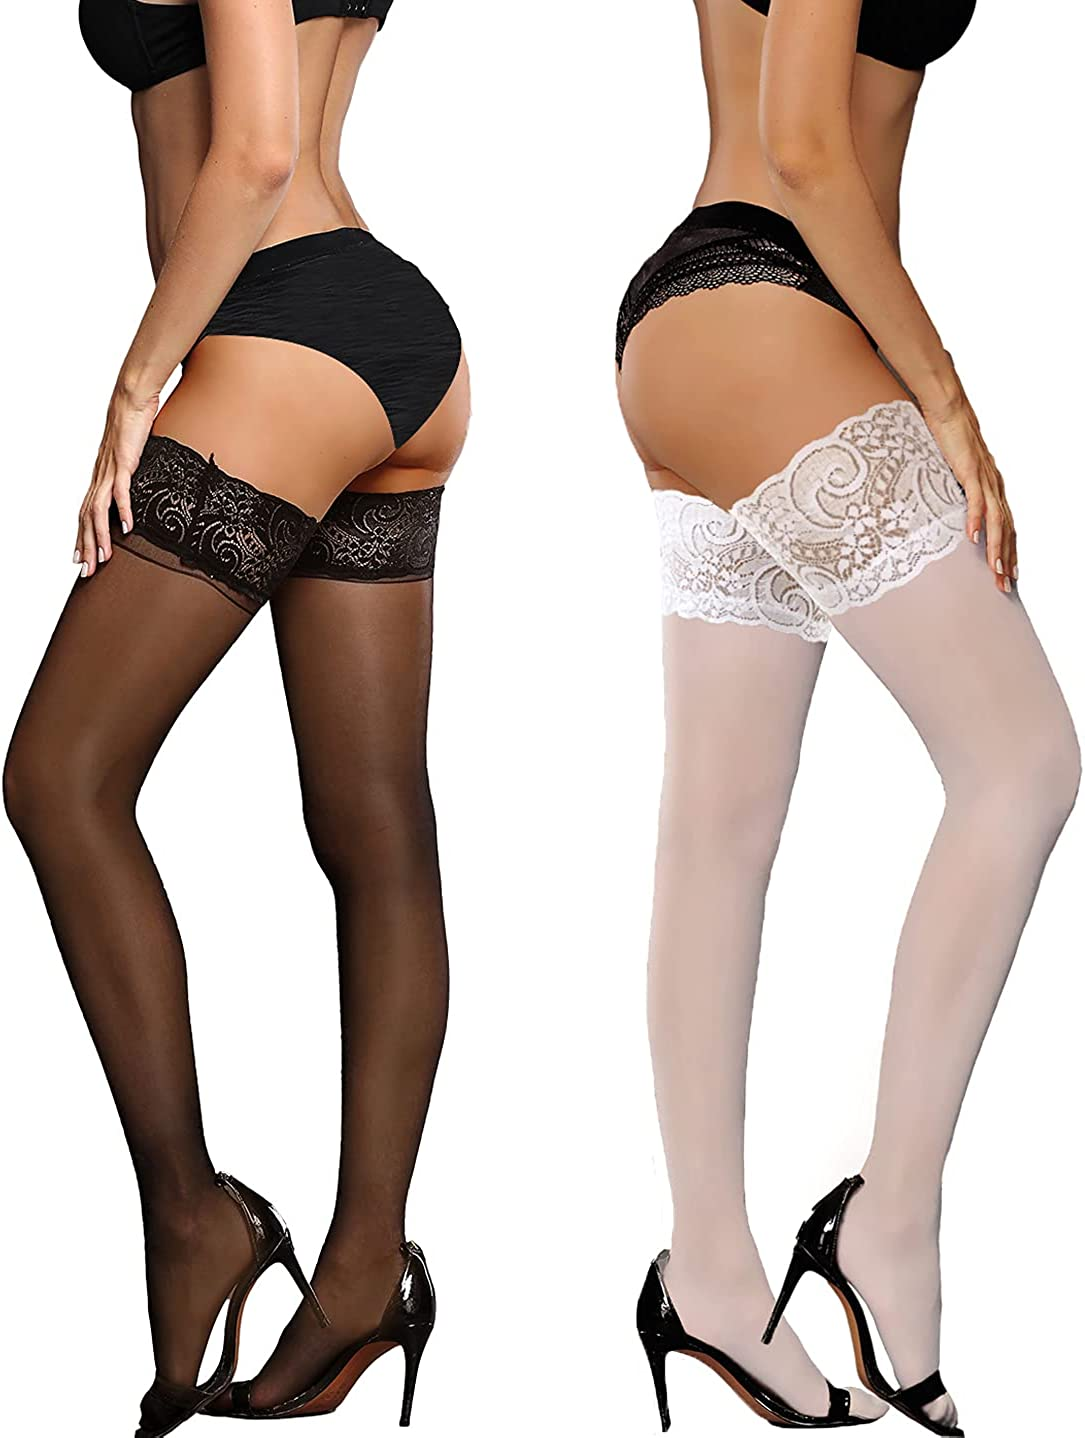 LUCKELF Plus Size Thigh High Stockings for Women Silicone Lace Top Semi Sheer Lingerie Pantyhose Stay up